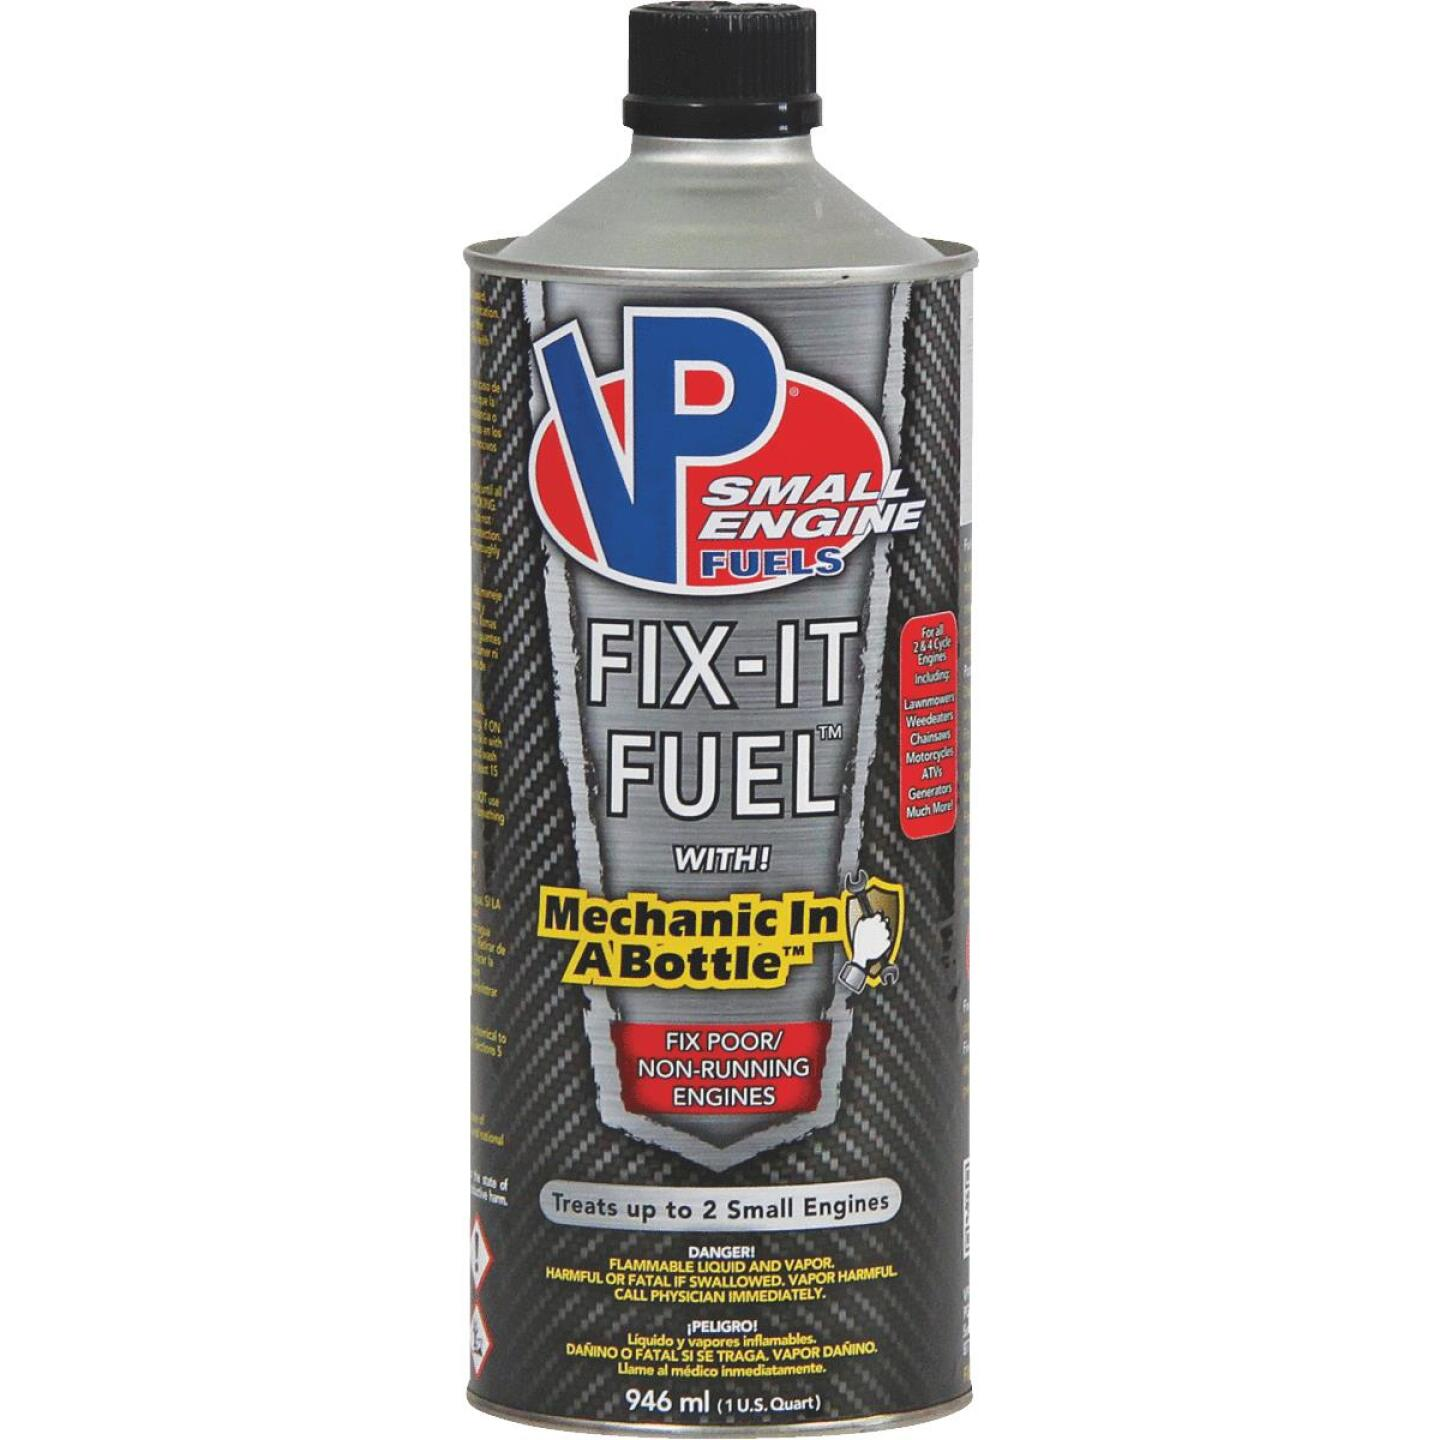 VP Small Engine Fuels 32 Oz. Fix-It Fuel System Cleaner with Mechanic In-a-Bottle Image 1